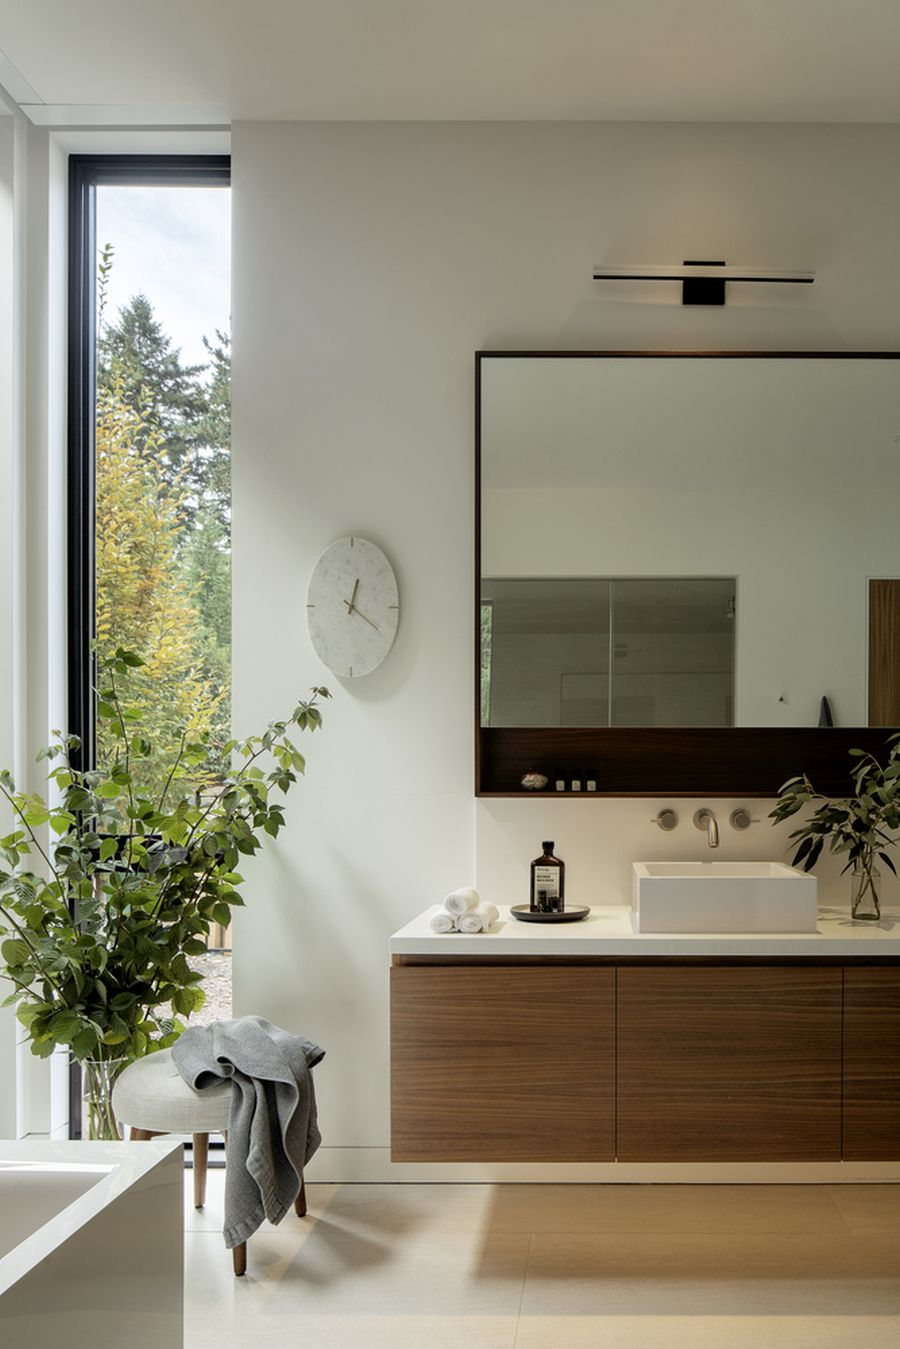 Tall vertical windows let light and lovely views into the master bathroom